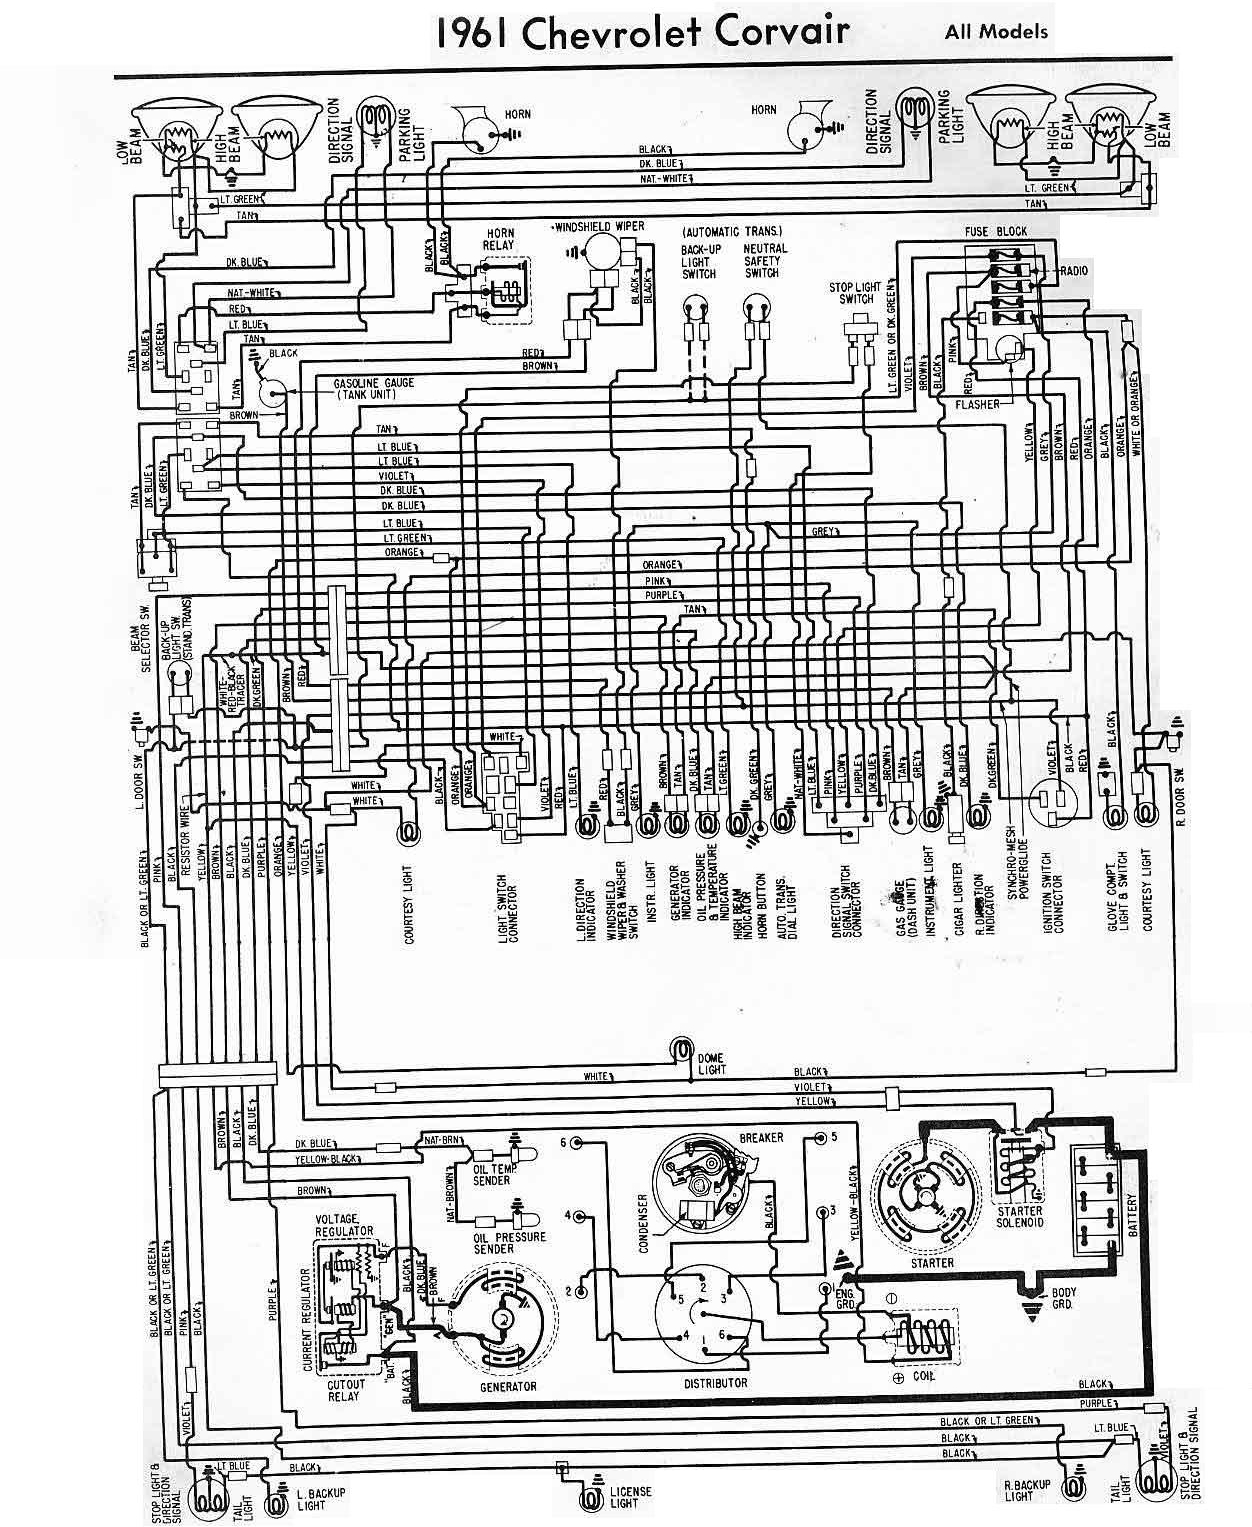 1961 chevrolet corvair electrical wiring diagram all about wiring rh diagramonwiring blogspot com 1962 Corvair Wiring-Diagram Corvair Tachometer Wiring Diagram